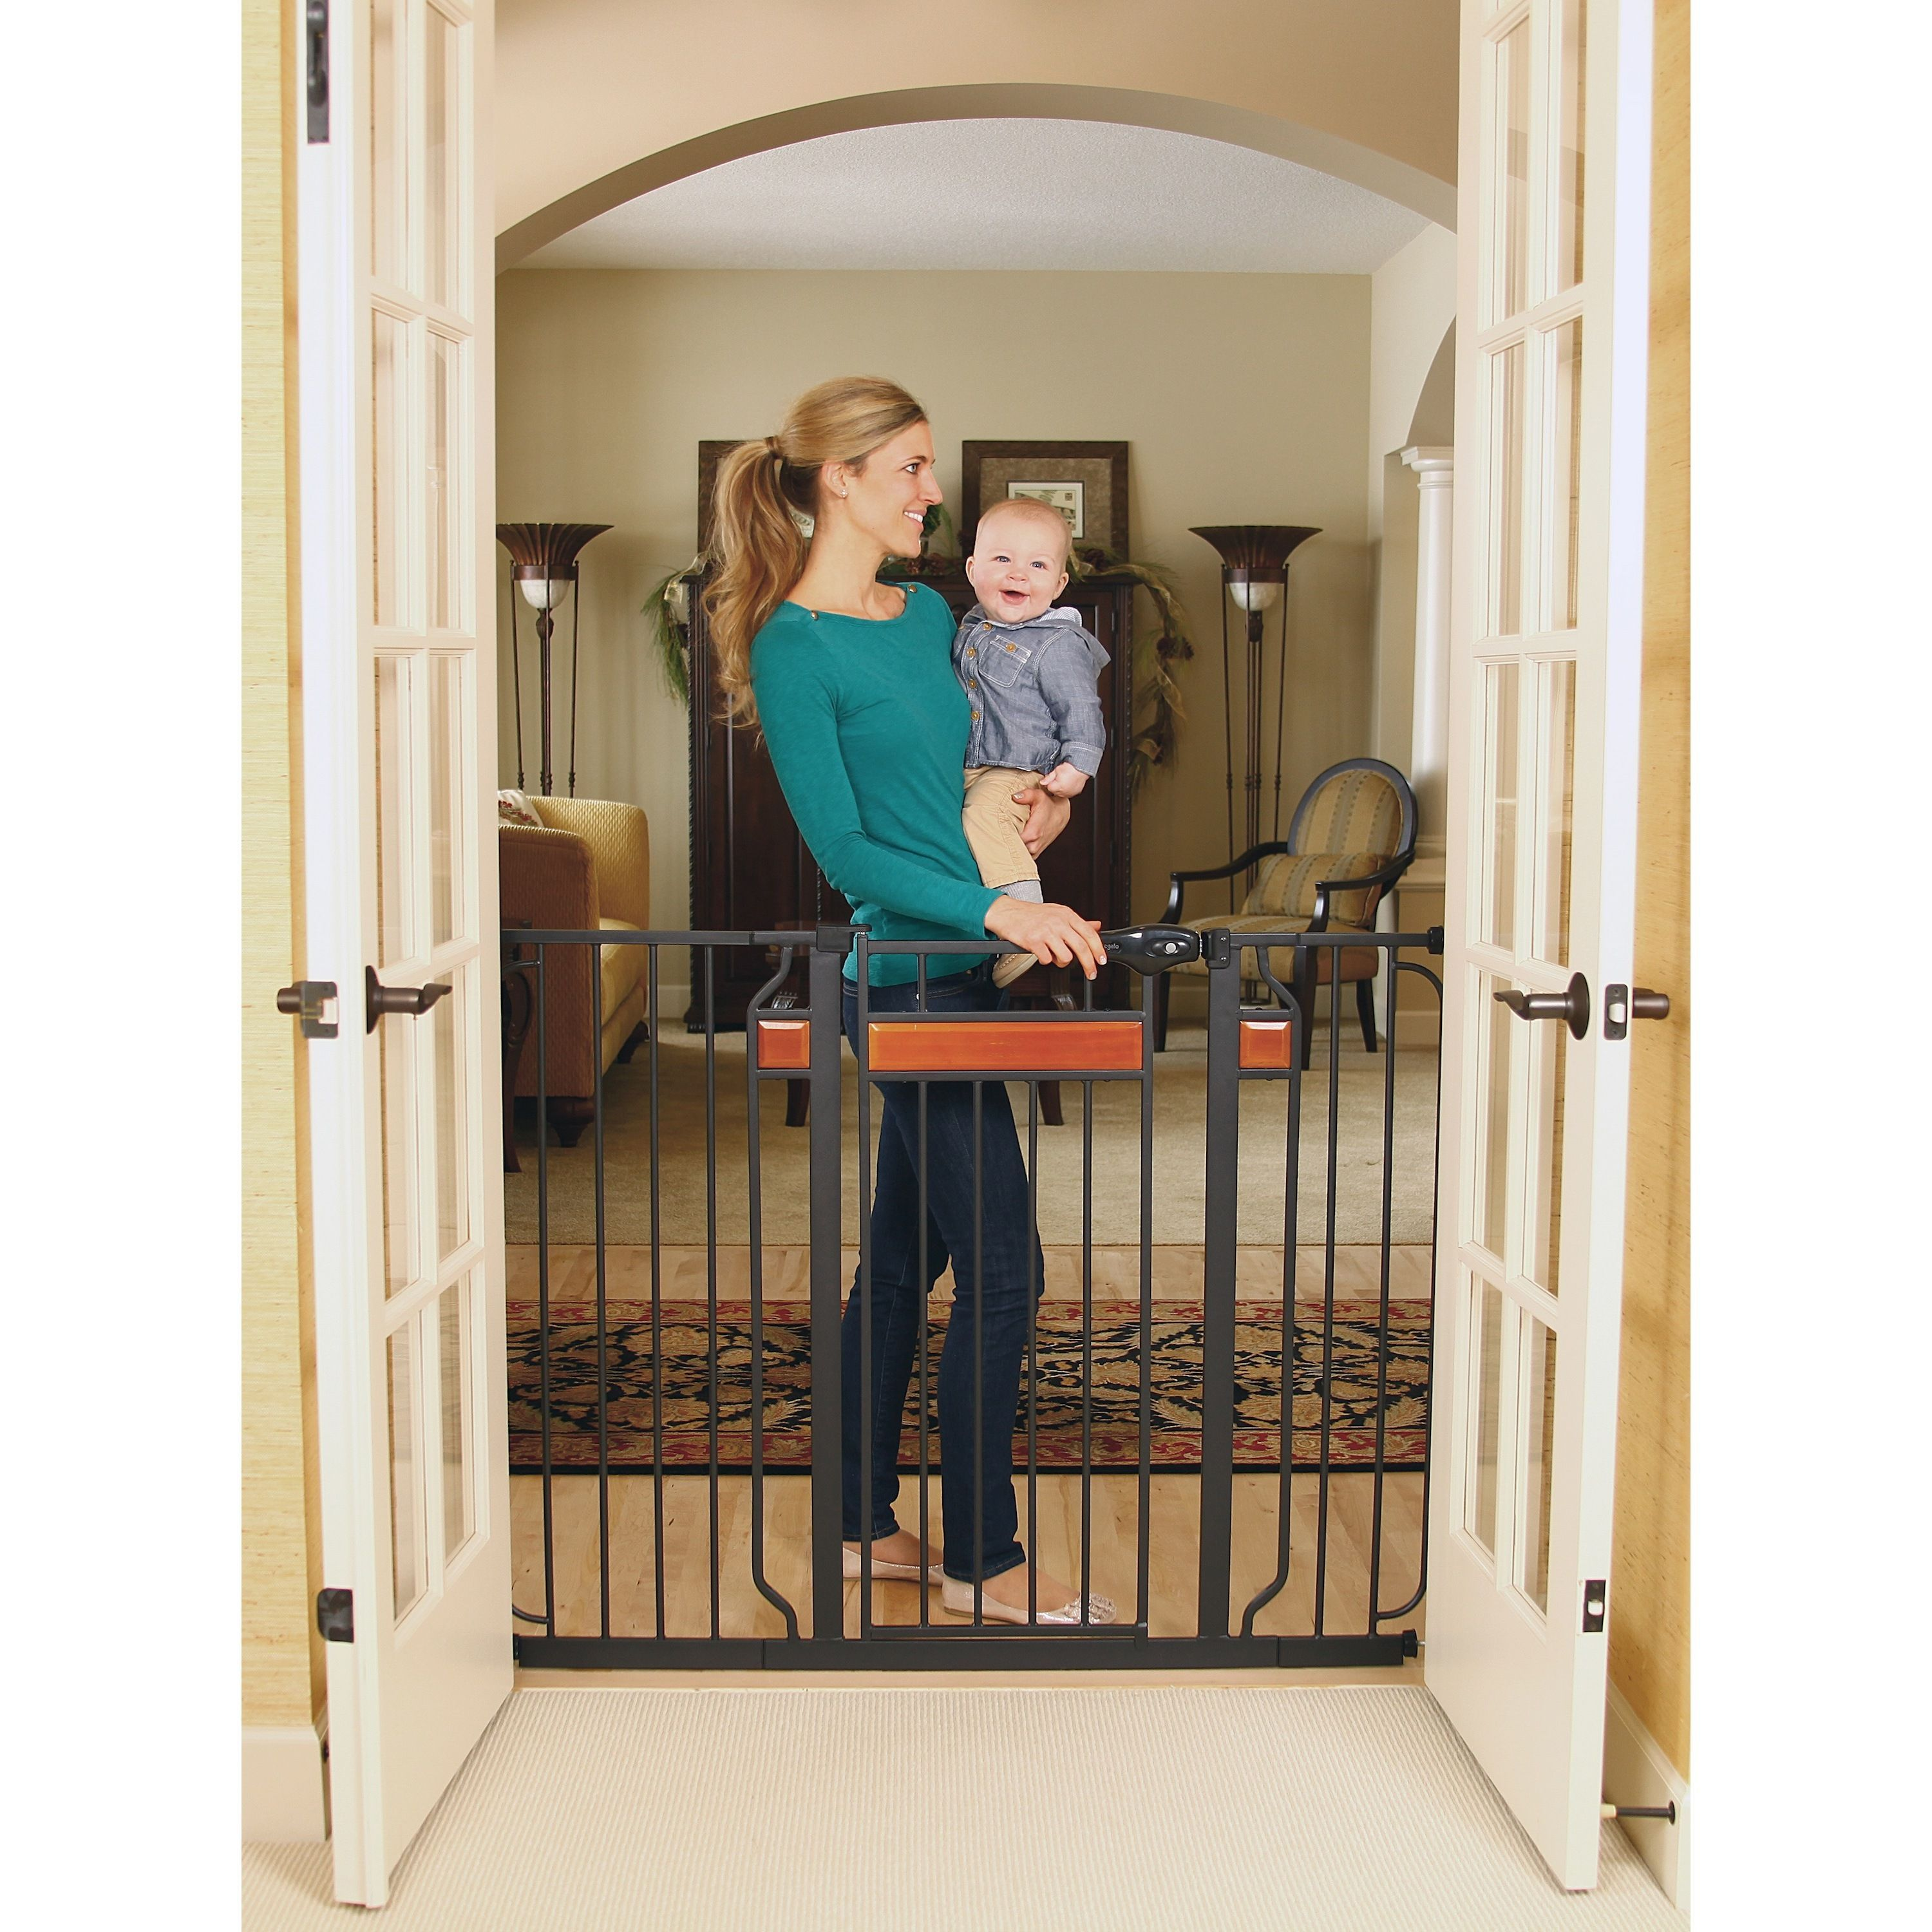 Online Shopping Bedding Furniture Electronics Jewelry Clothing More Baby Gates Baby Gate For Stairs Child Safety Gates